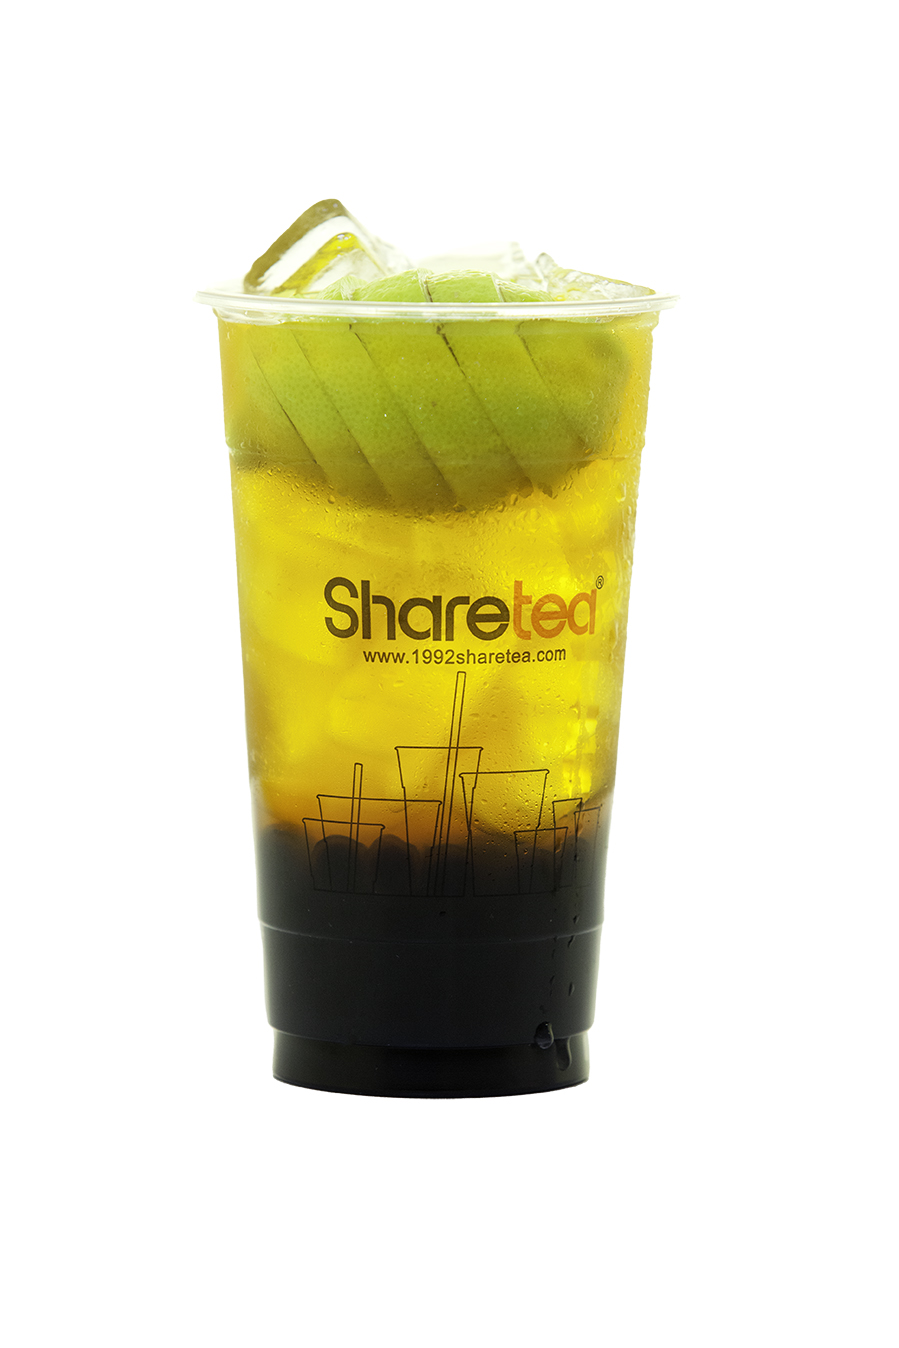 WHOLE LEMON GREEN TEA WITH PEARLS